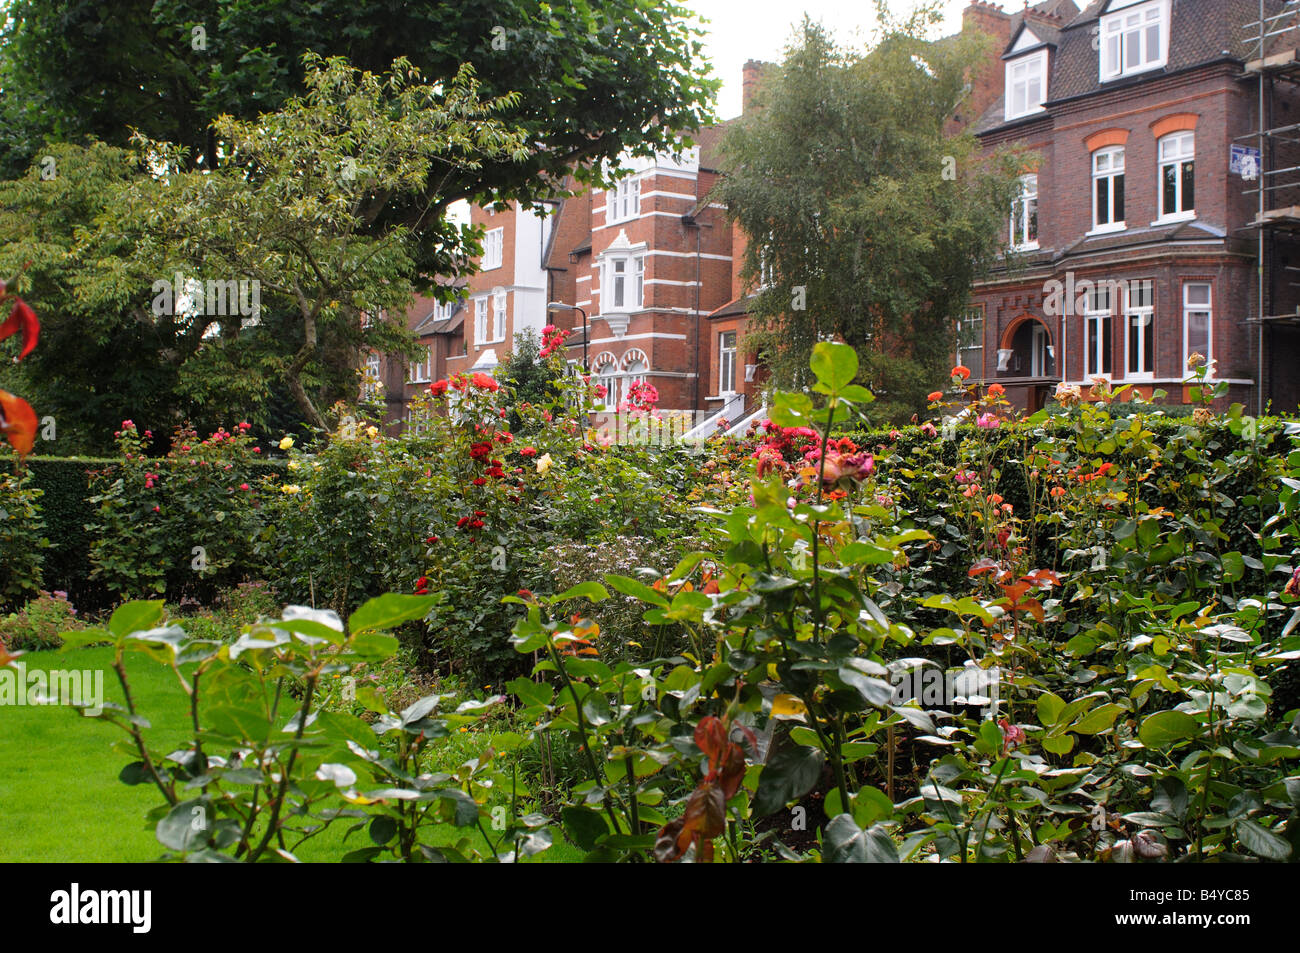 Front garden of the Freud's Museum in London - Stock Image